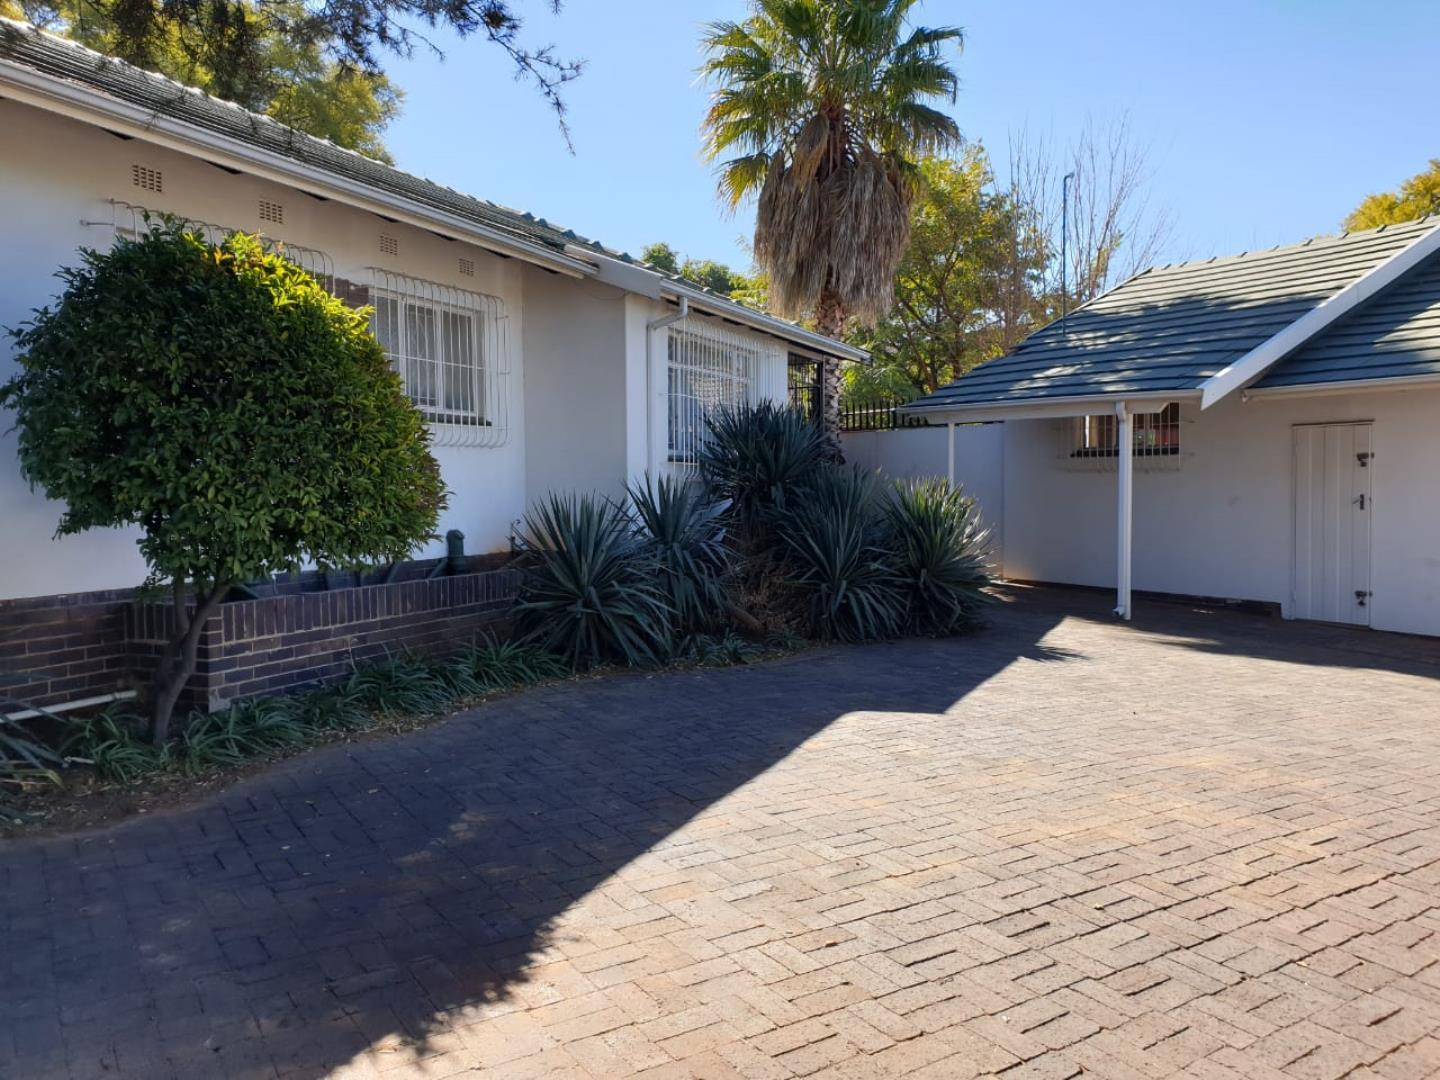 4 Bedroom House for Sale in Florida Park, Roodepoort - Gauteng